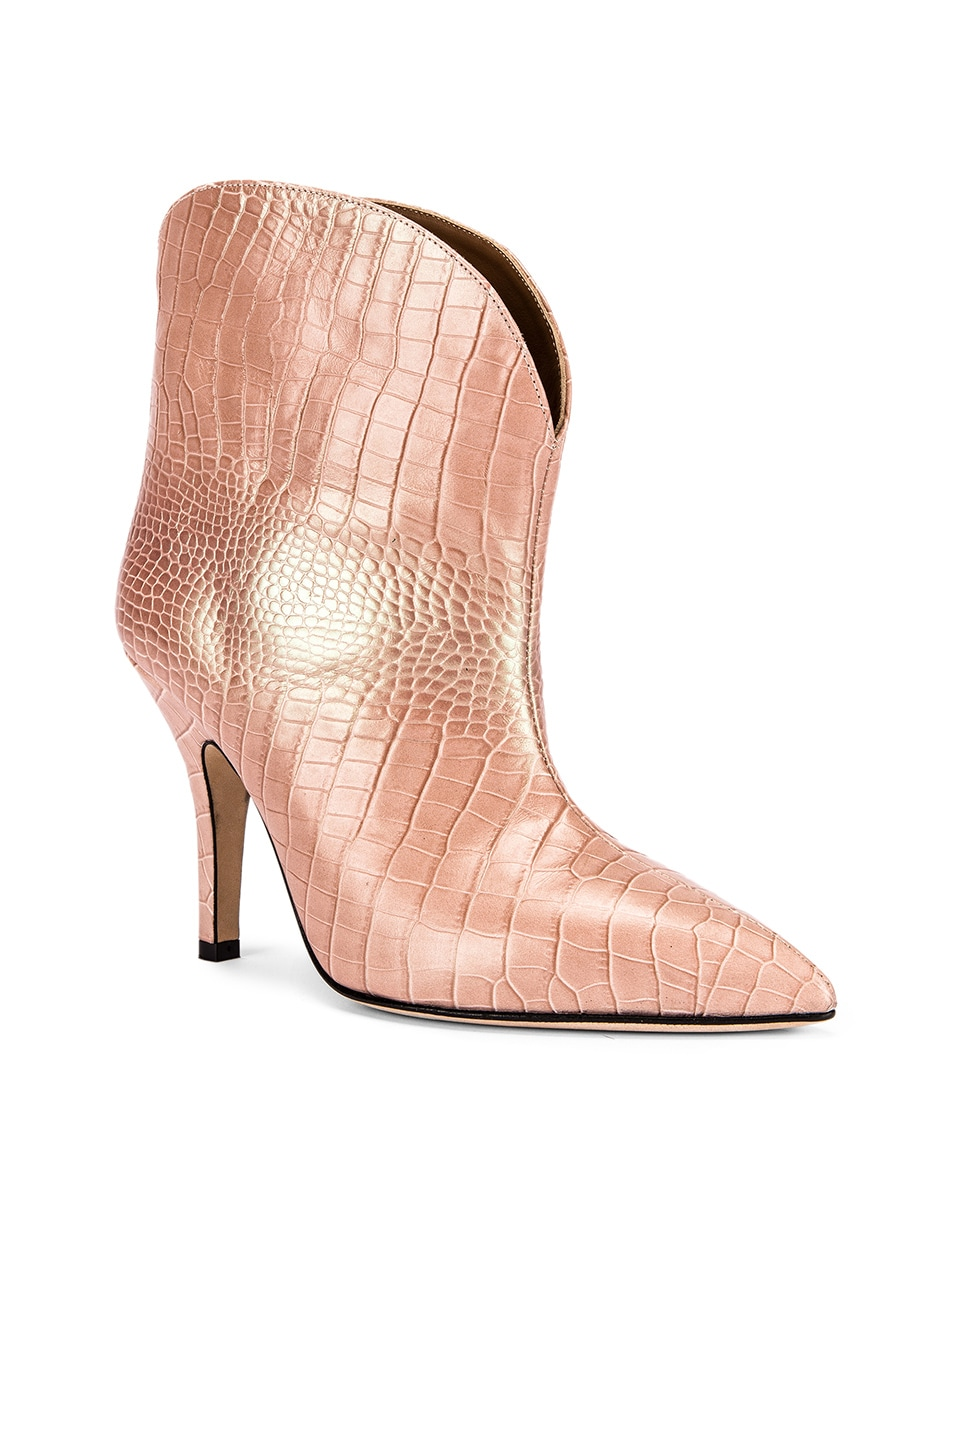 Image 2 of Paris Texas Iridescent Moc Croco Rounded Stiletto Ankle Boot in Pink